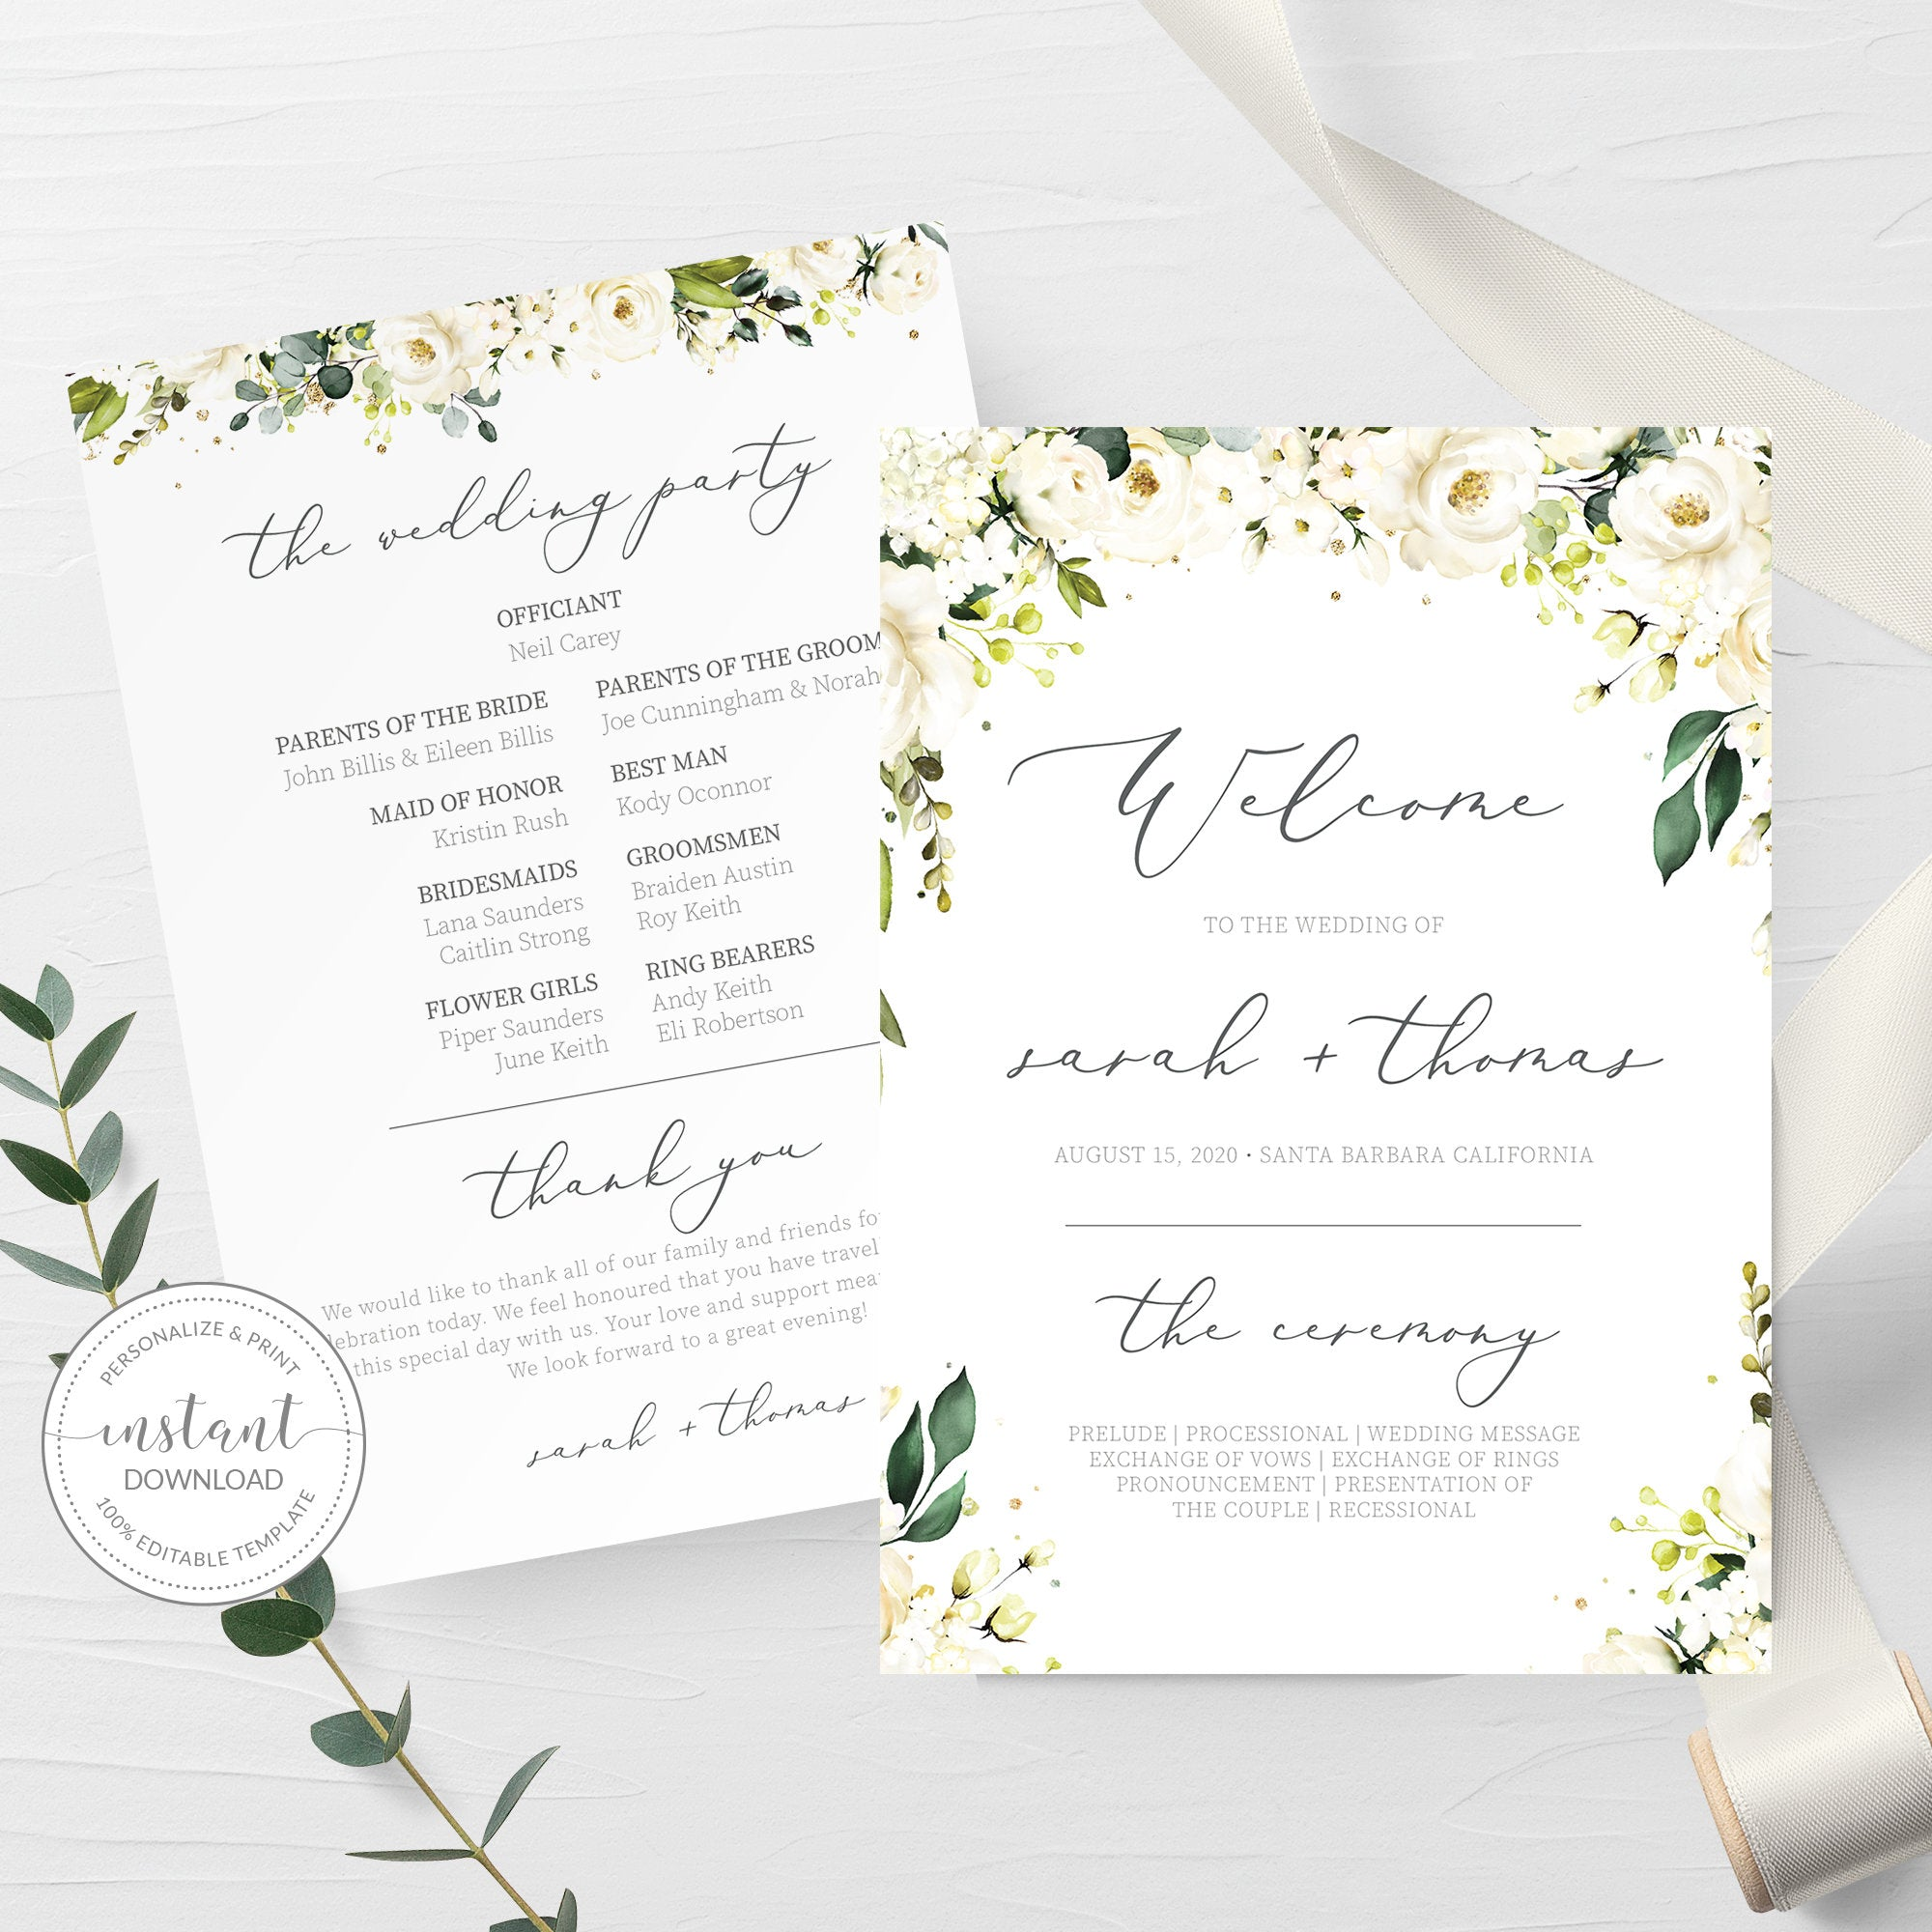 White Floral Greenery Wedding Program Template Wedding Ceremony Programs Editable Wedding Program 5x7 Digital Download Wrg100